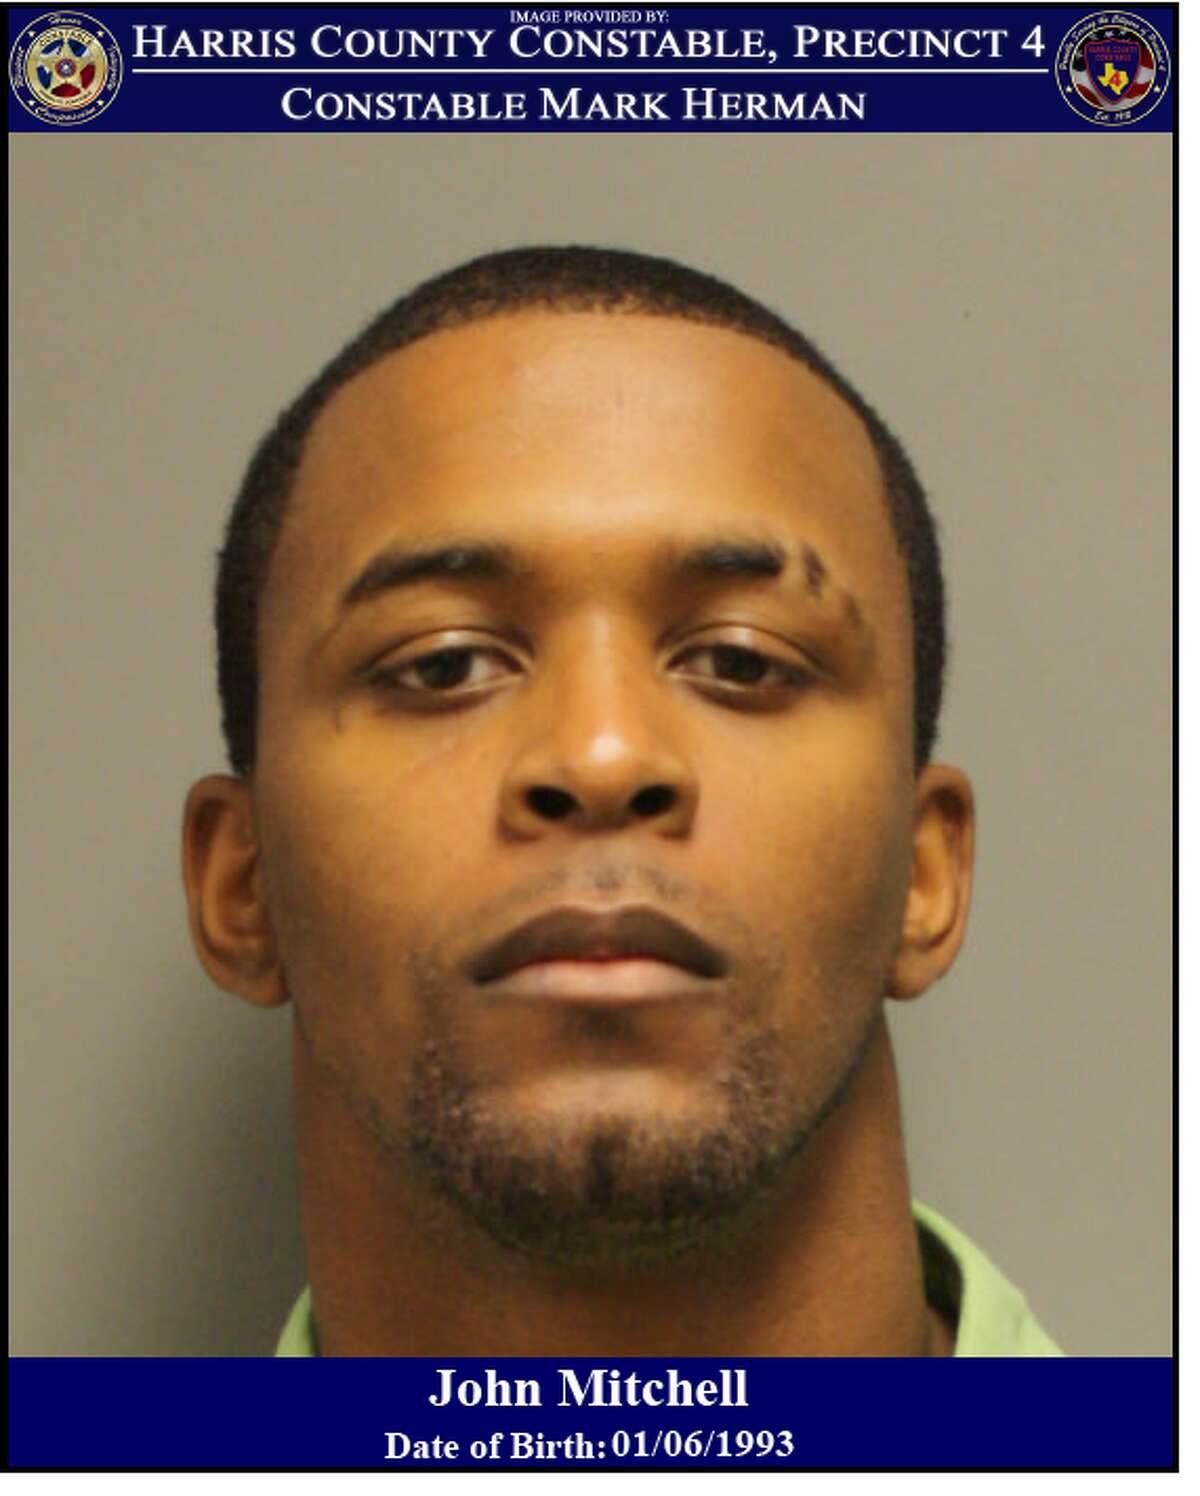 John Mitchell, 26, is wanted for felony theft after he allegedly stole $800 worth of tools from a northwest Houston Home Depot.